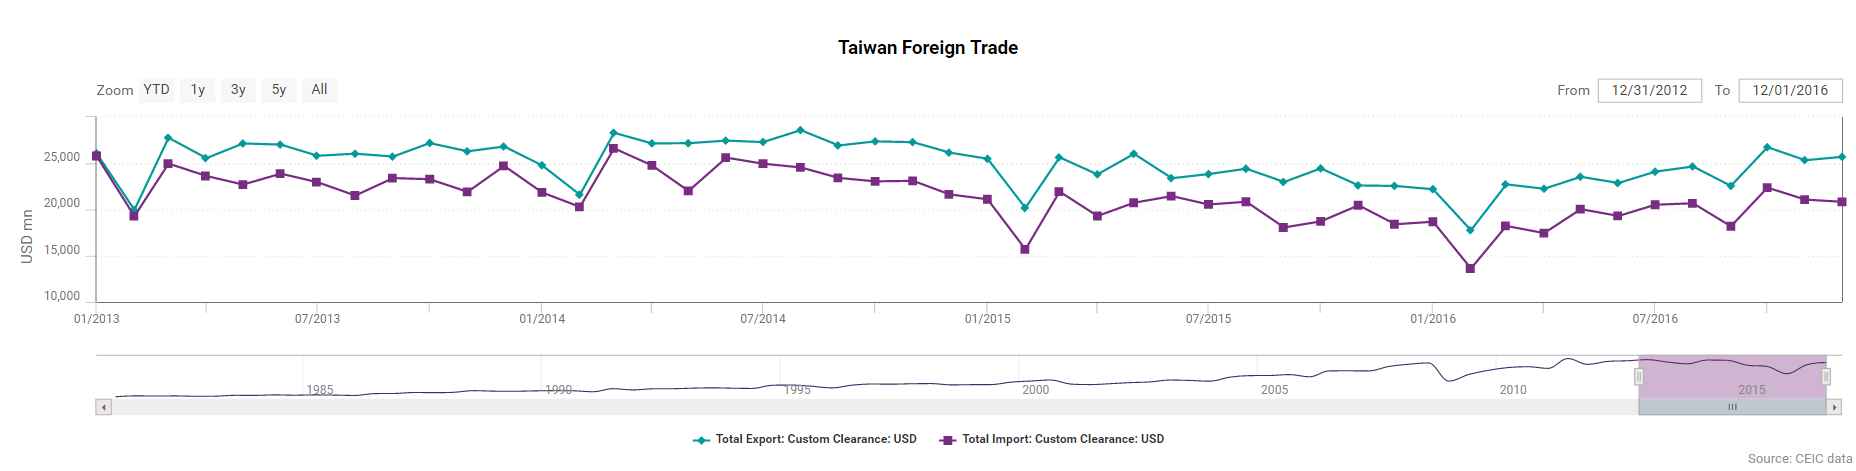 Taiwan Foreign Trade